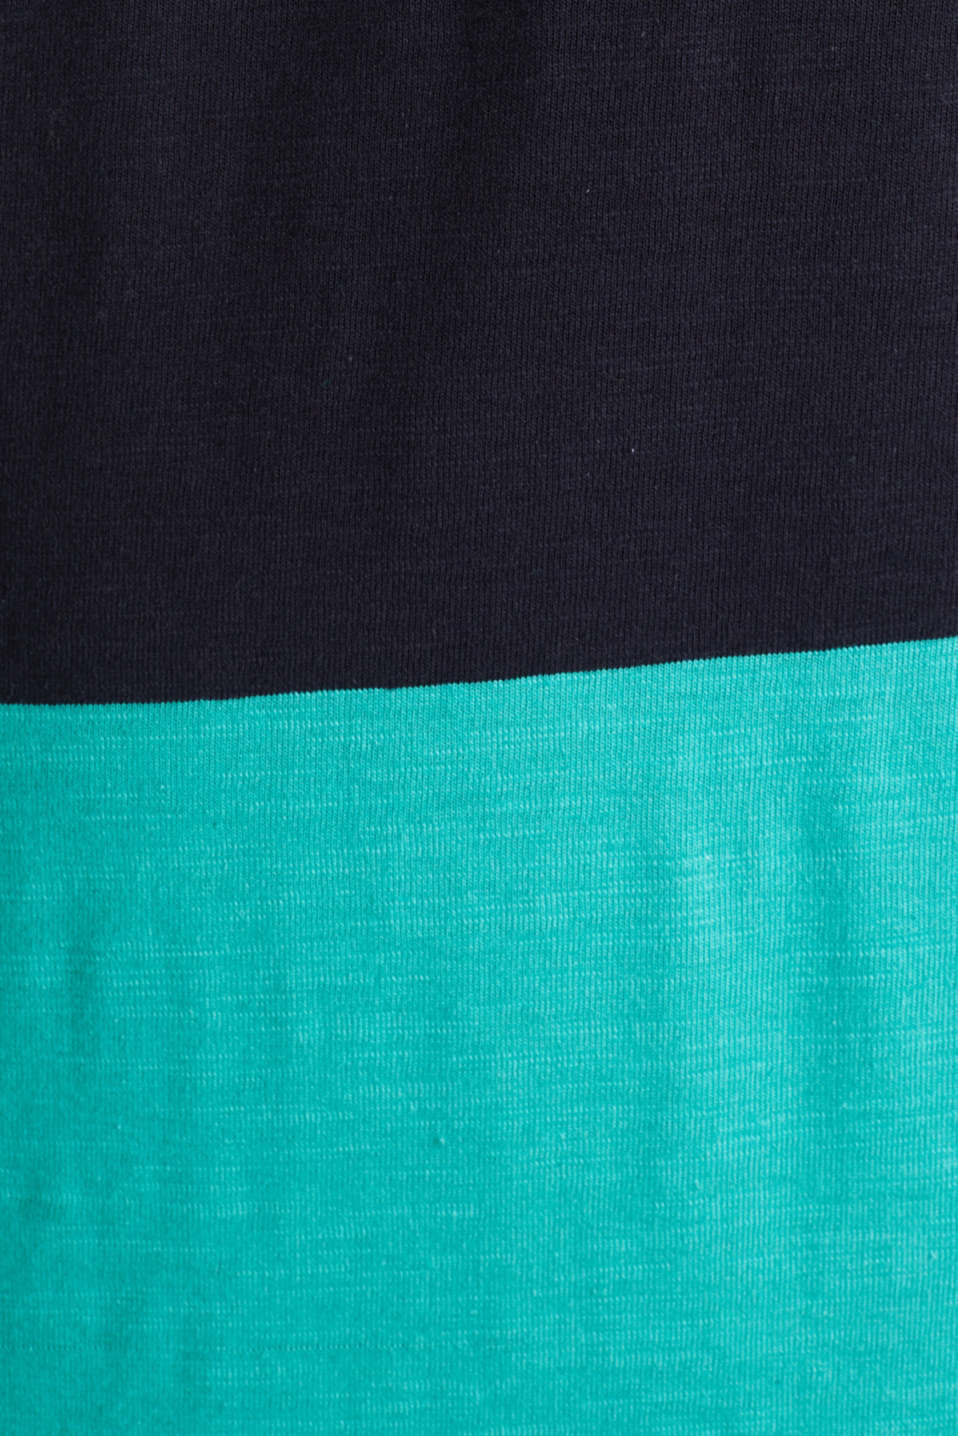 Jersey polo shirt, organic cotton, LIGHT TURQUOISE 3, detail image number 4